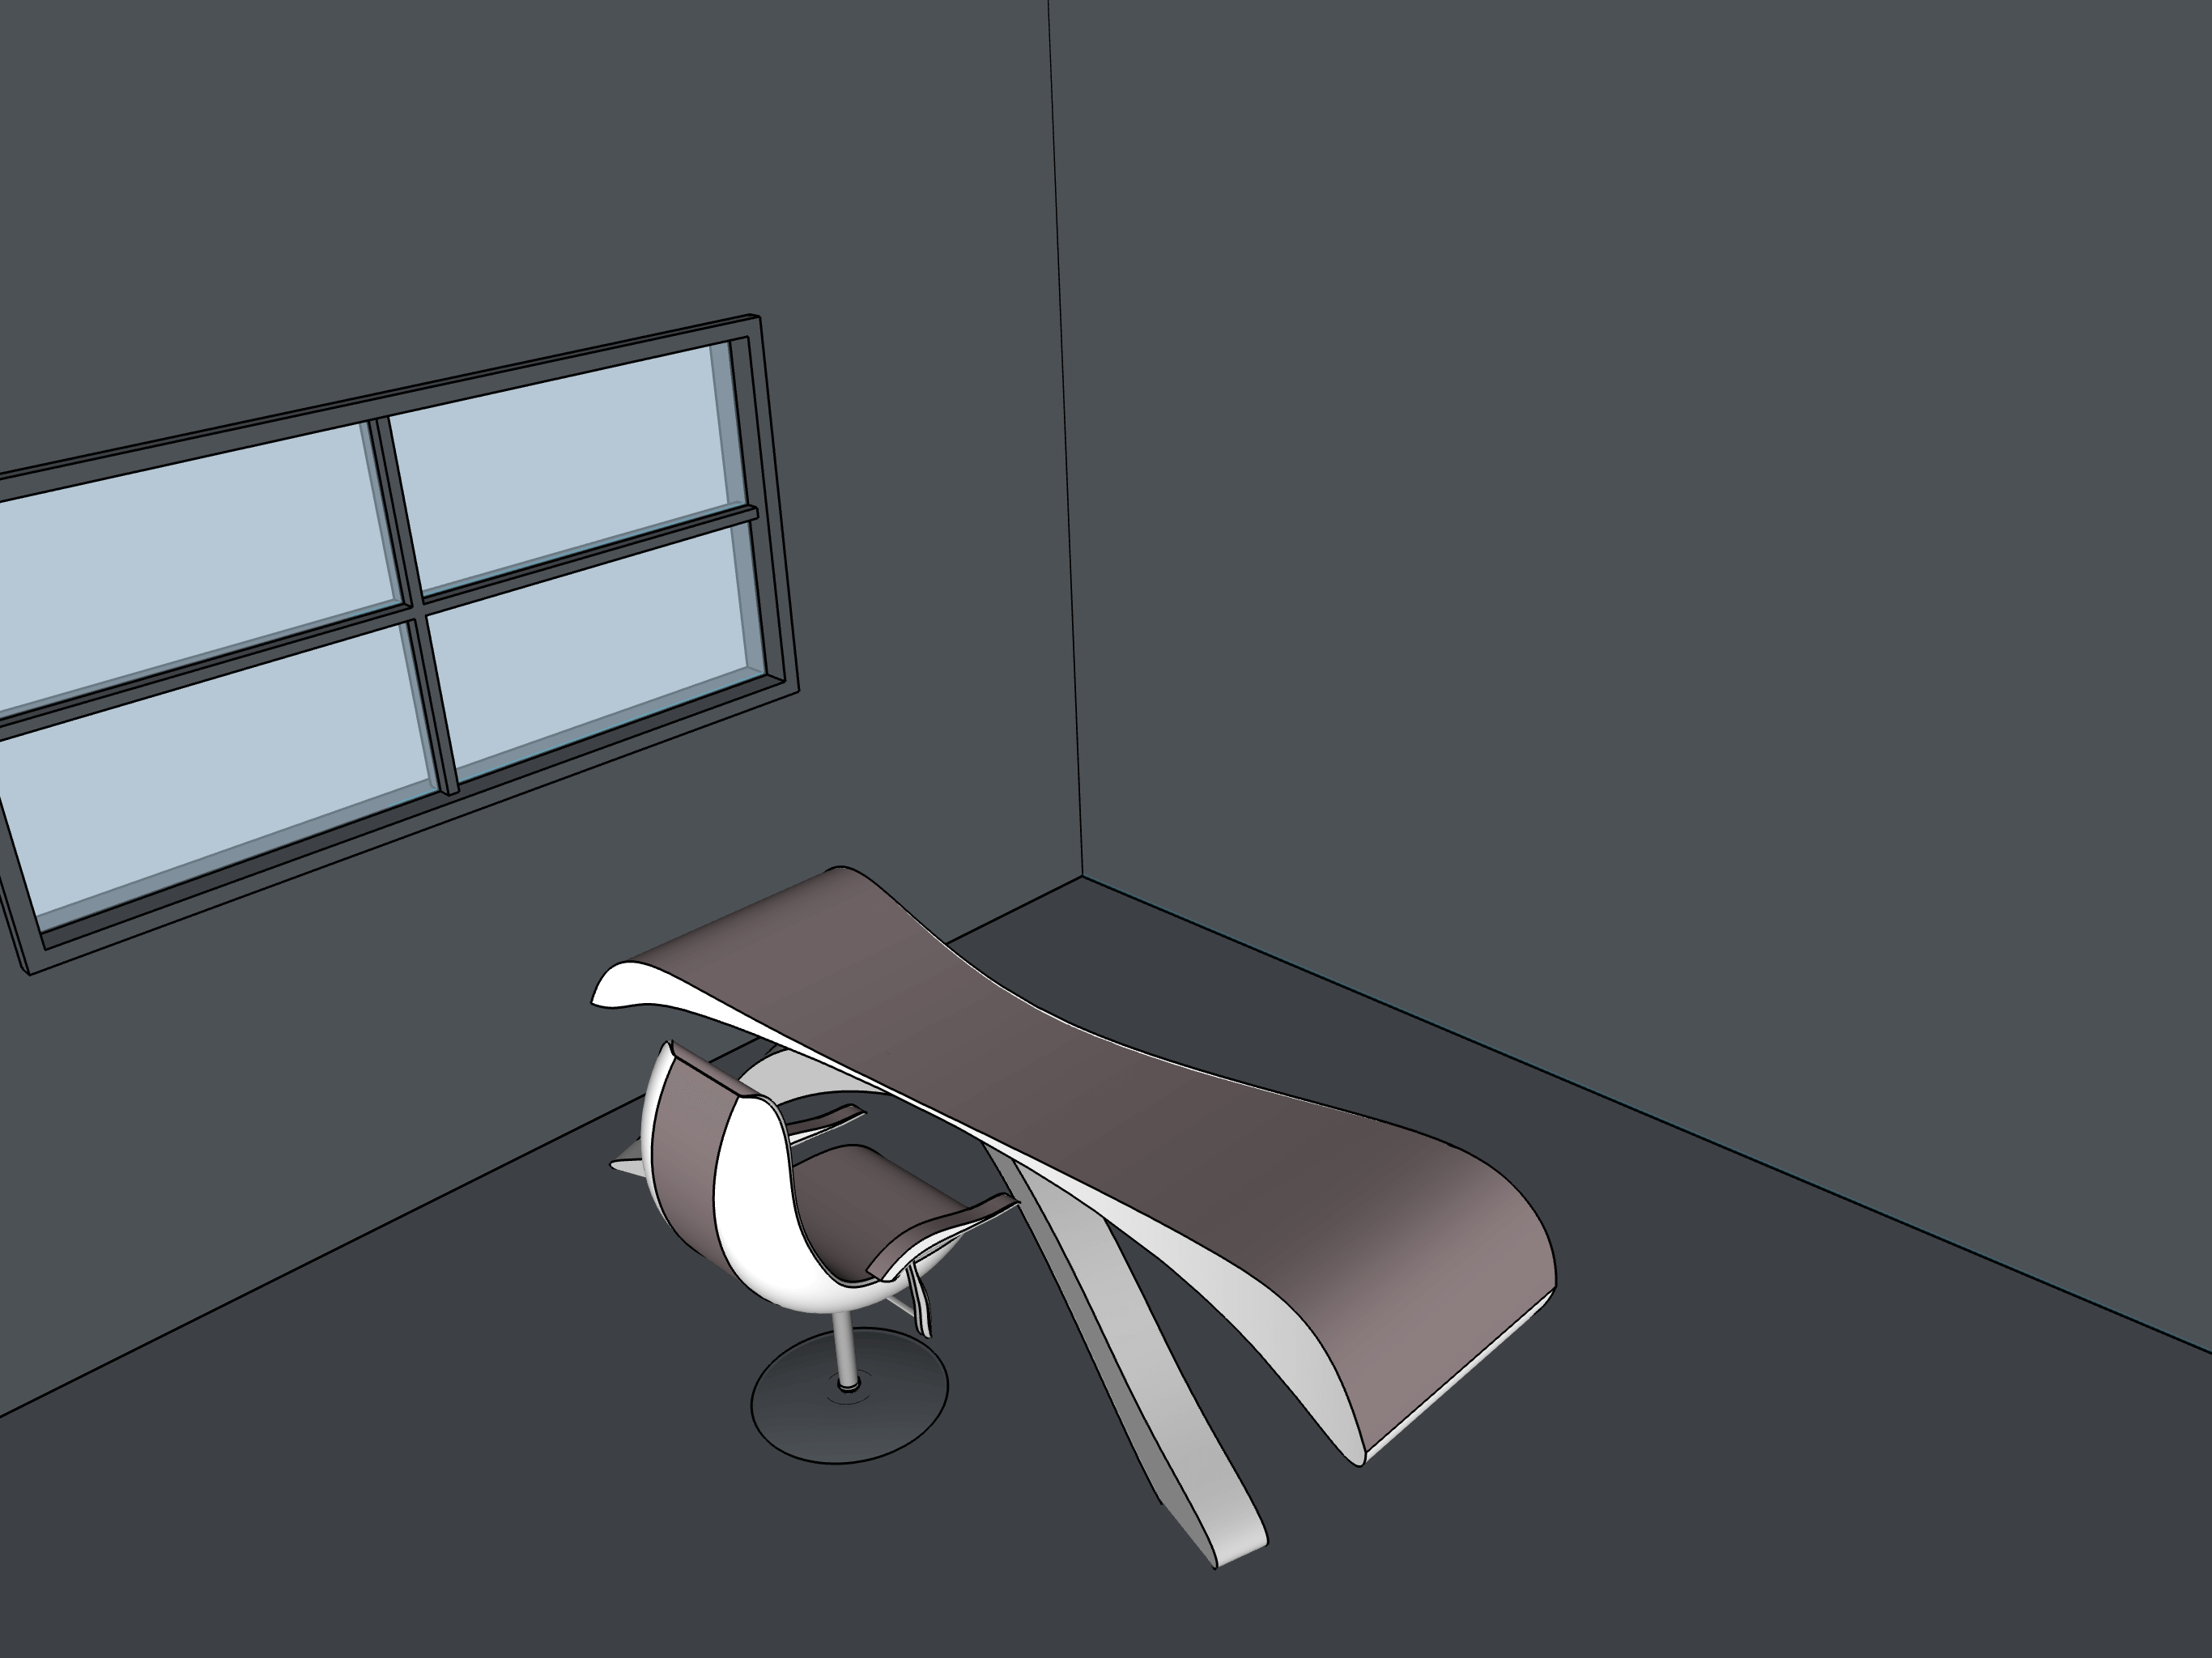 architecture_student_shapr3d_userstory_2